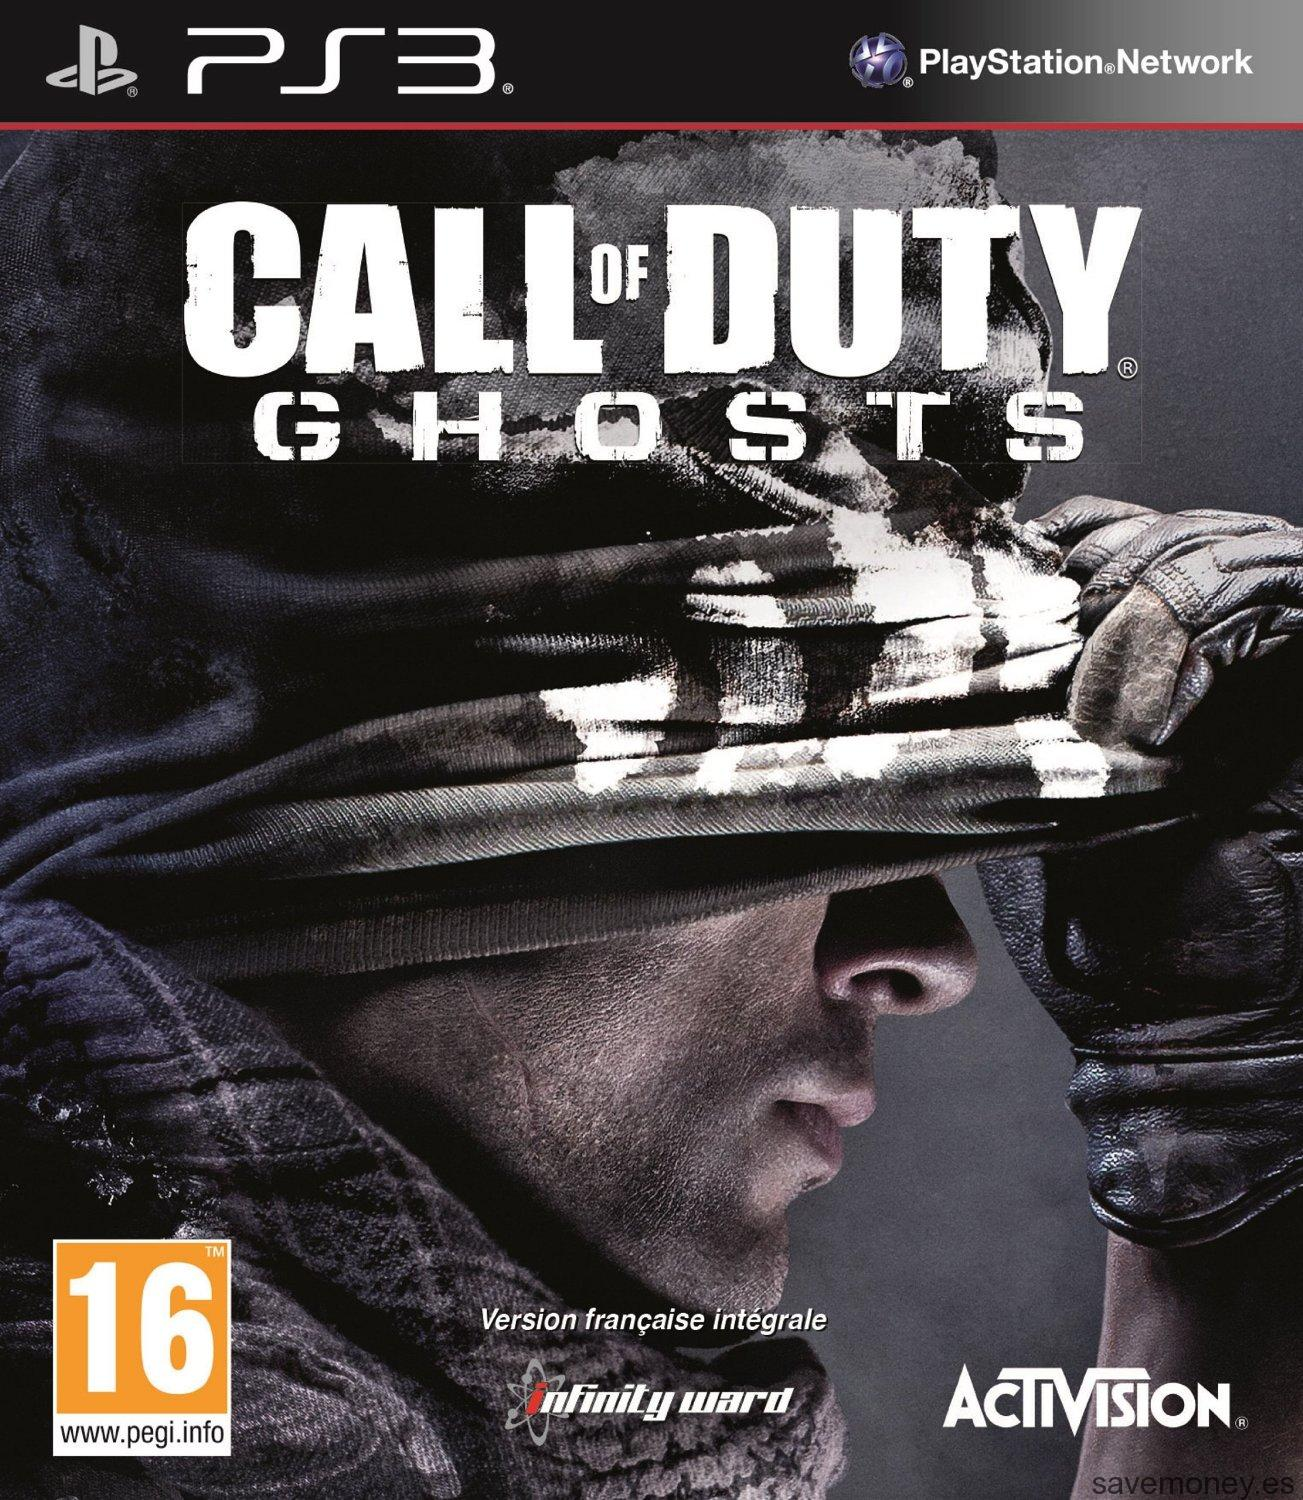 Videojuego Call of Duty Ghosts para PS3